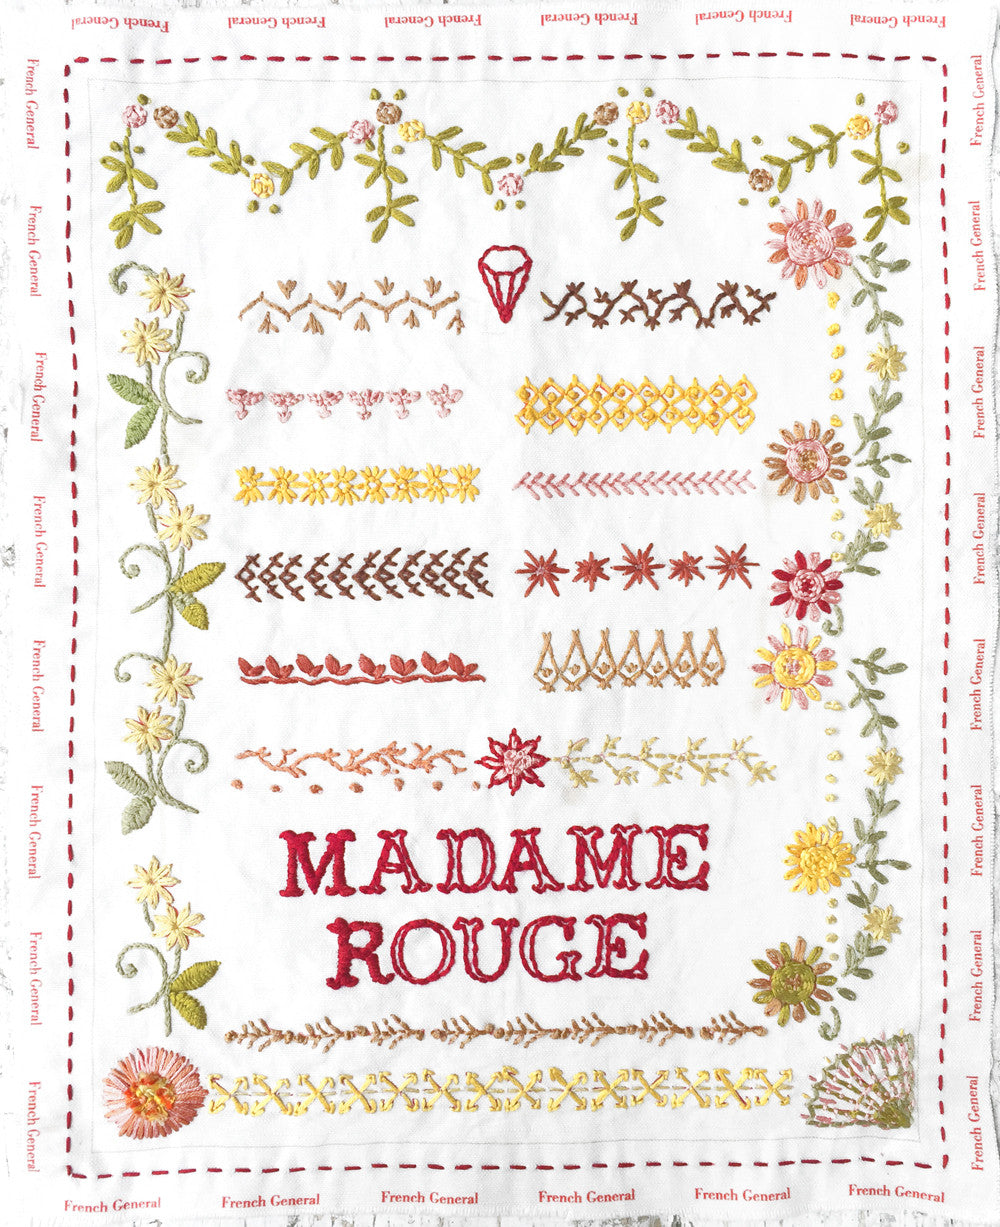 Madame Rouge Embroidery Sampler